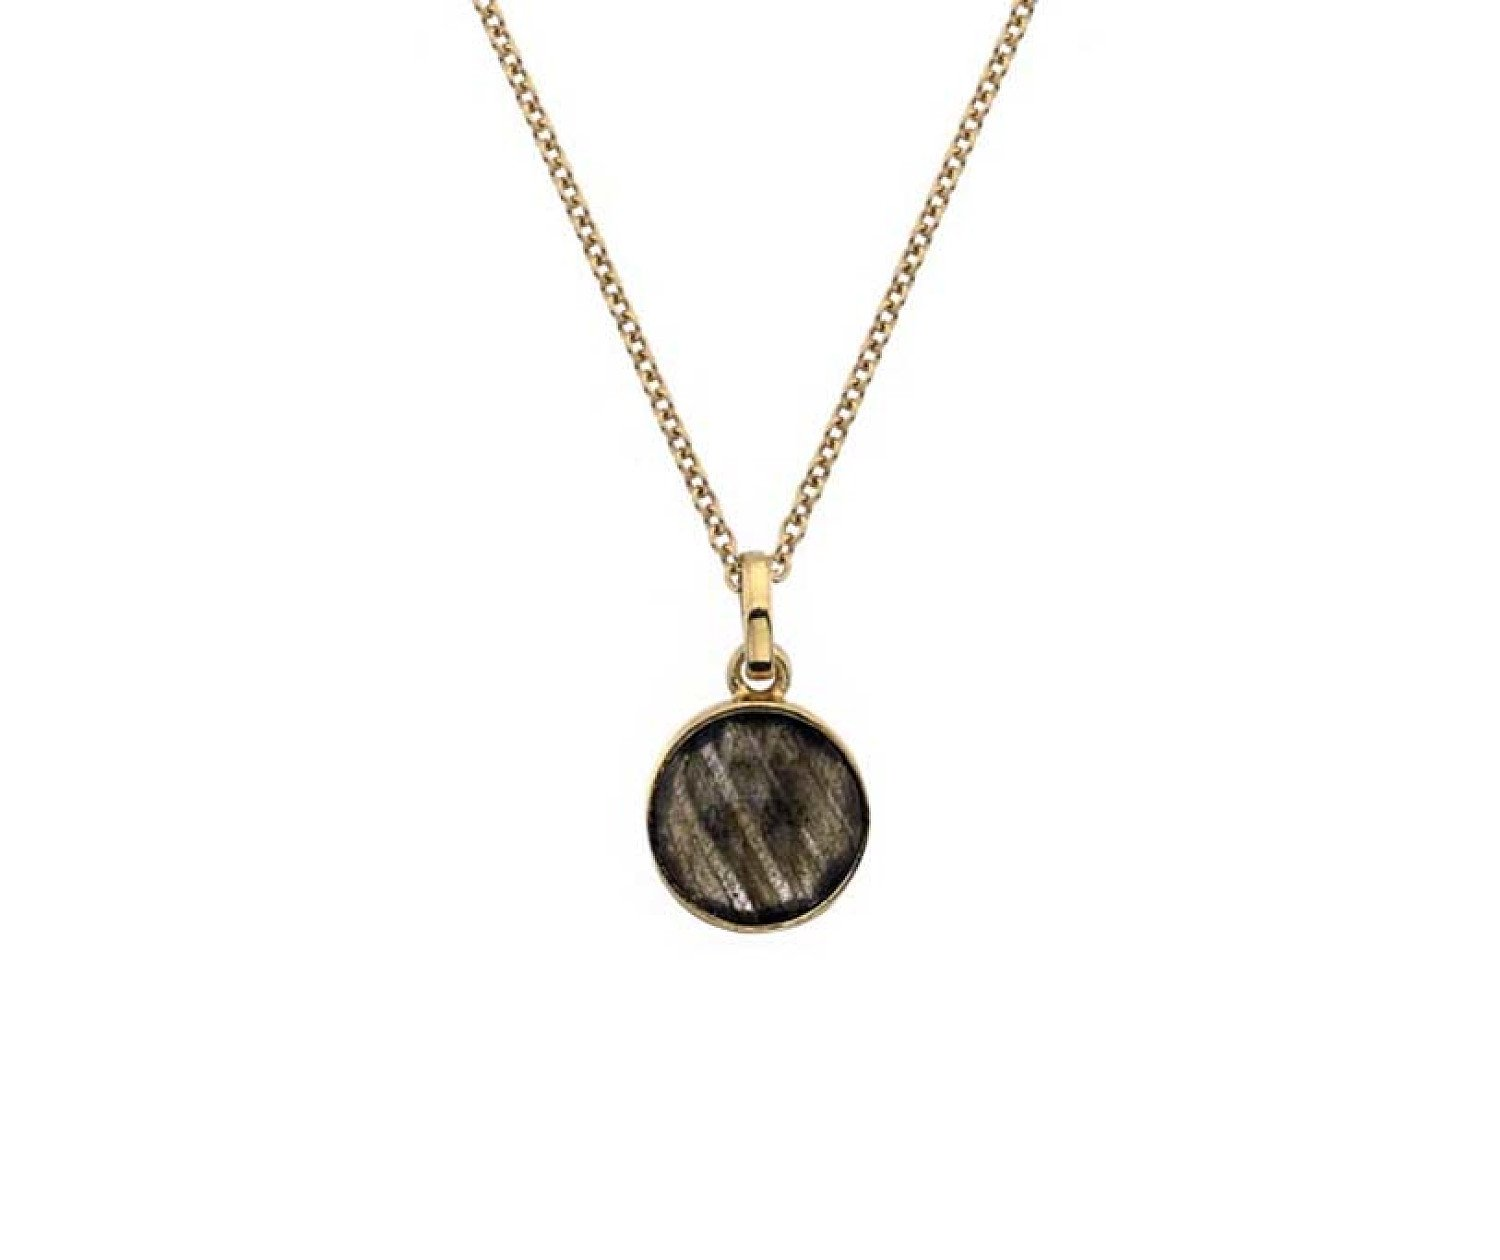 9ct Yellow, White and Rose Gold Necklaces Collection from Callibeau Jewellery